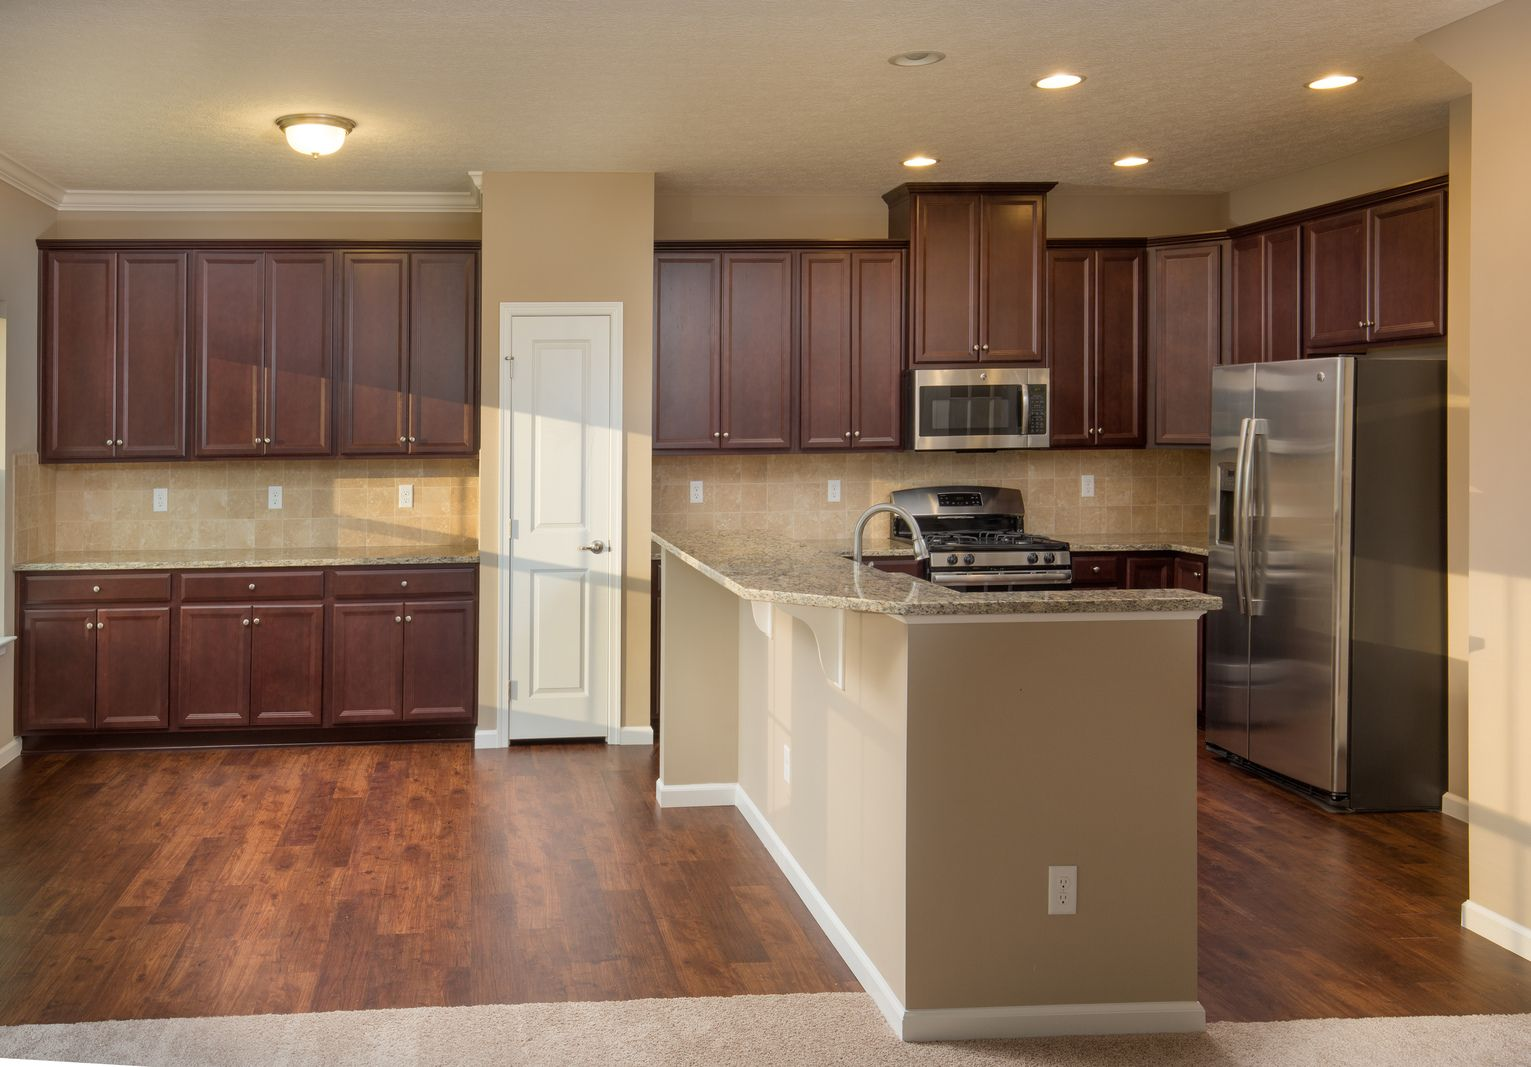 Kitchen-in-Ferncliff-at-Cascadia Craftsman Homes-in-Charlottesville